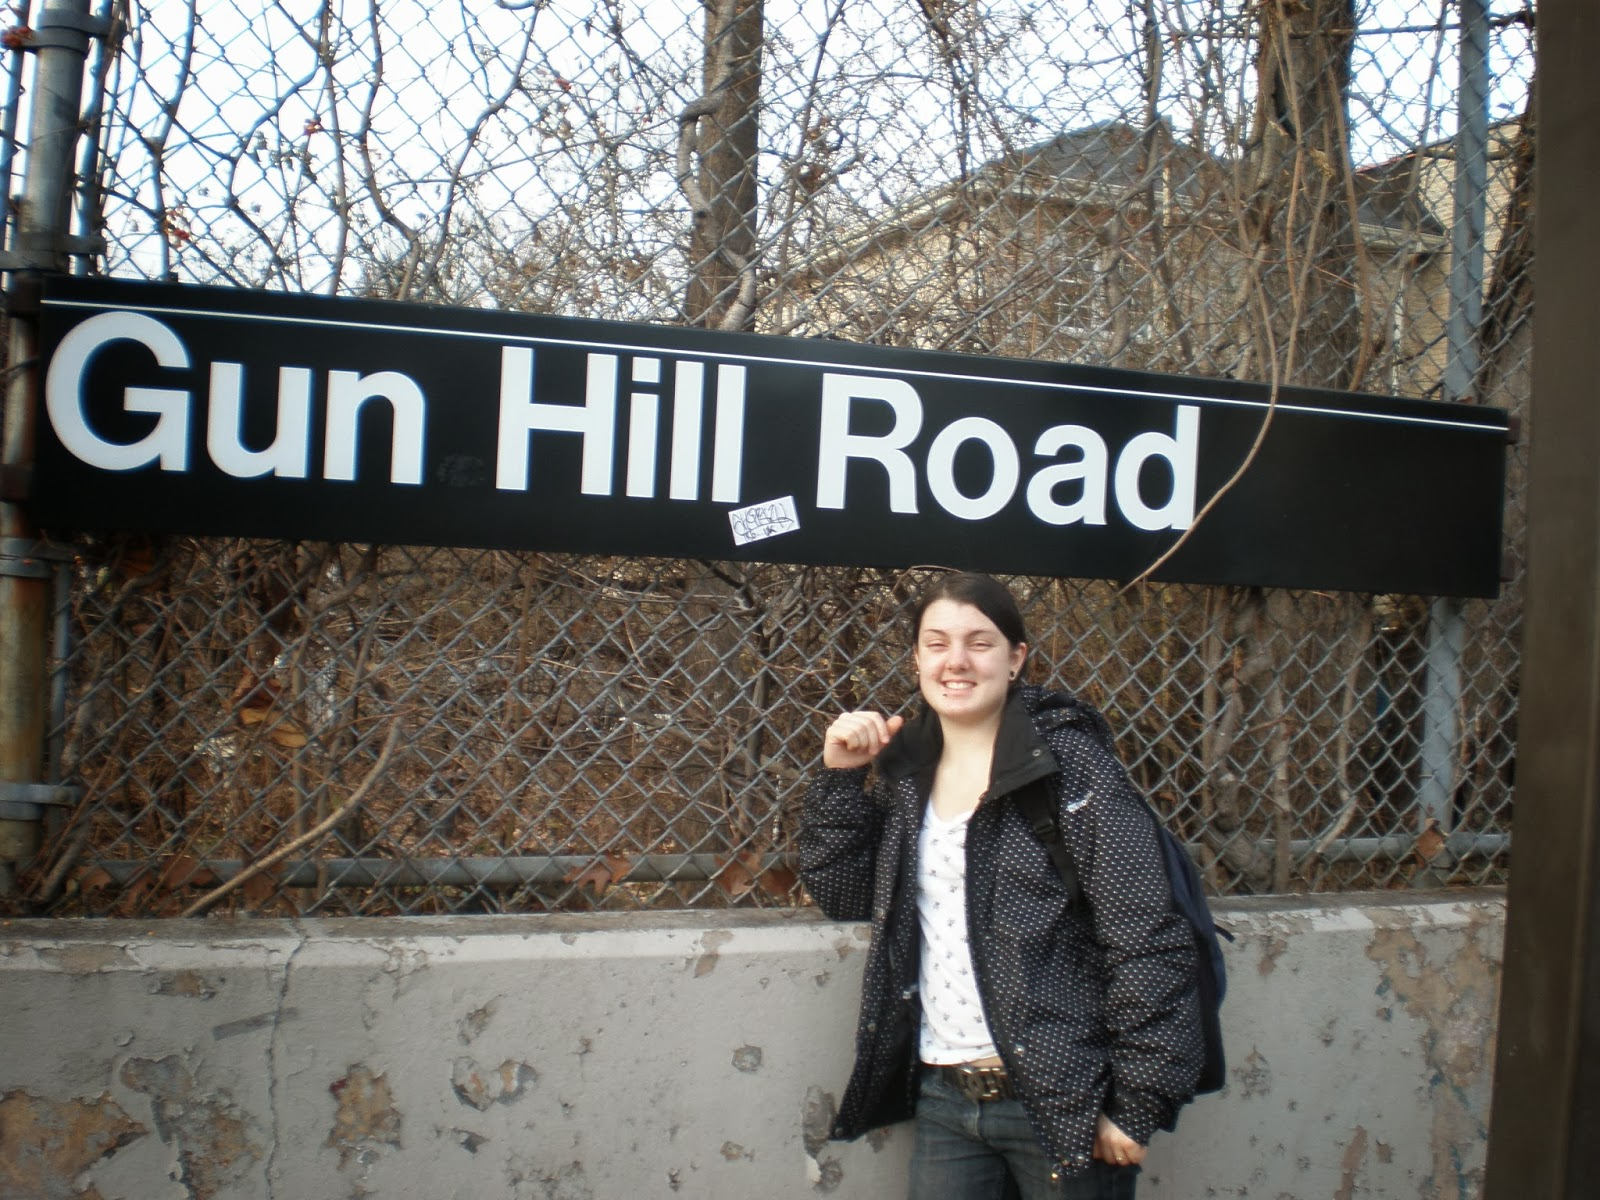 bronx, gun hill road, subway,NYC, New York, 10 free things to do, free things to do in NYC, travel, New York, explore, adventures, photography, usa, tourism, tourists,